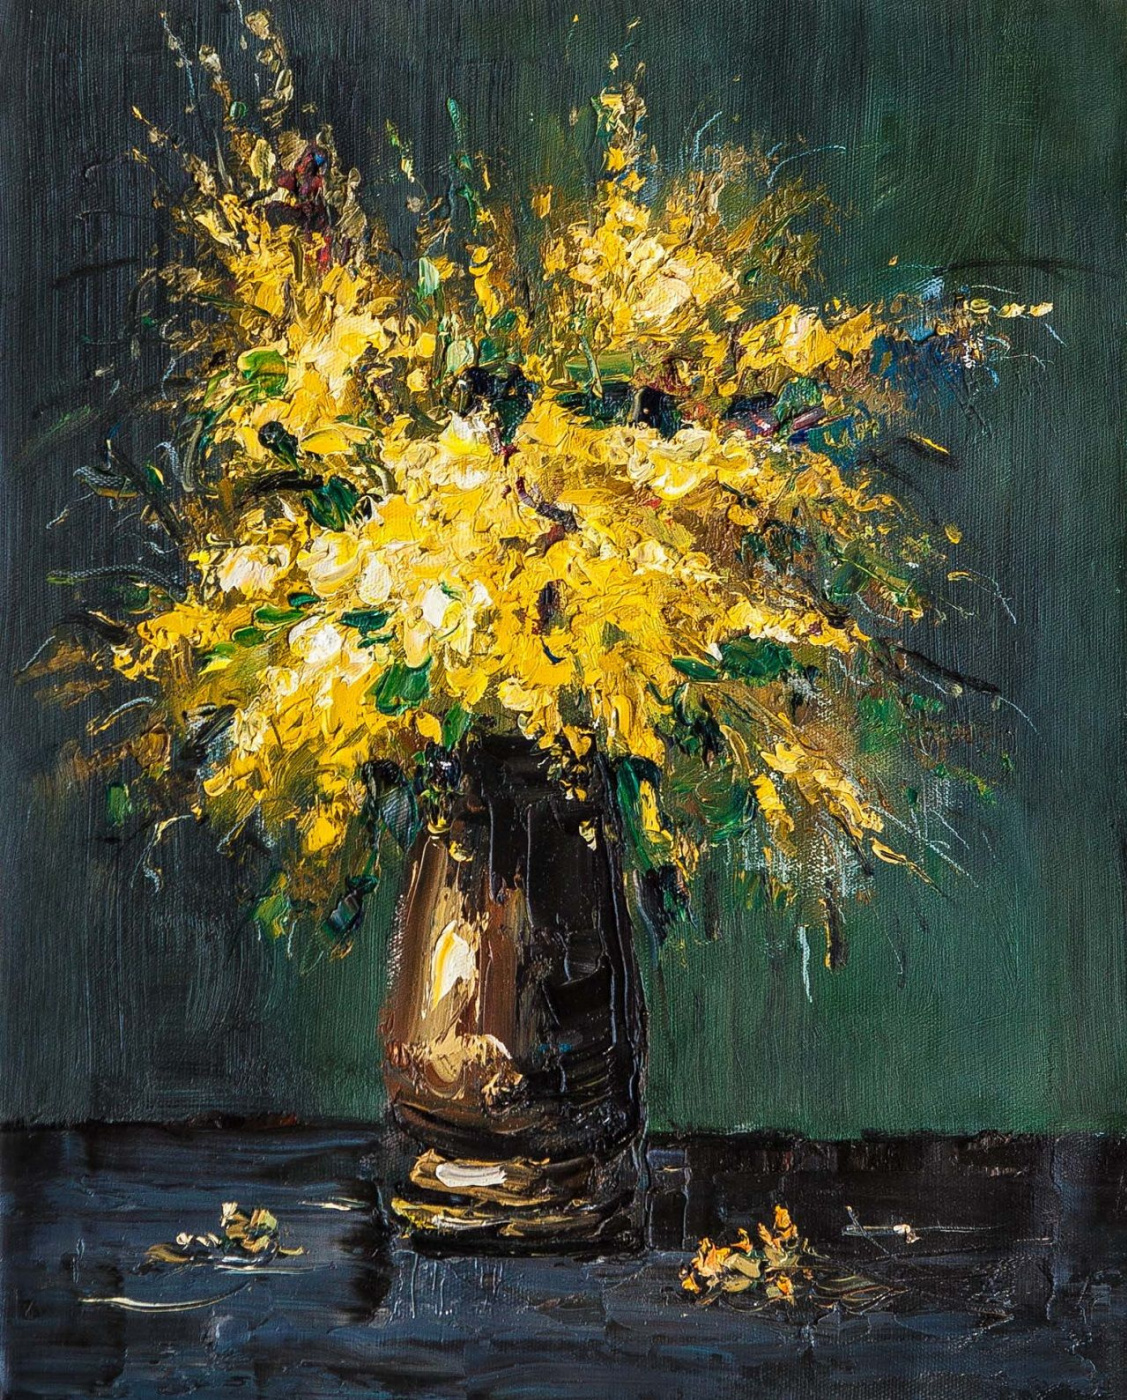 (no name). Mimosa bouquet in a vase